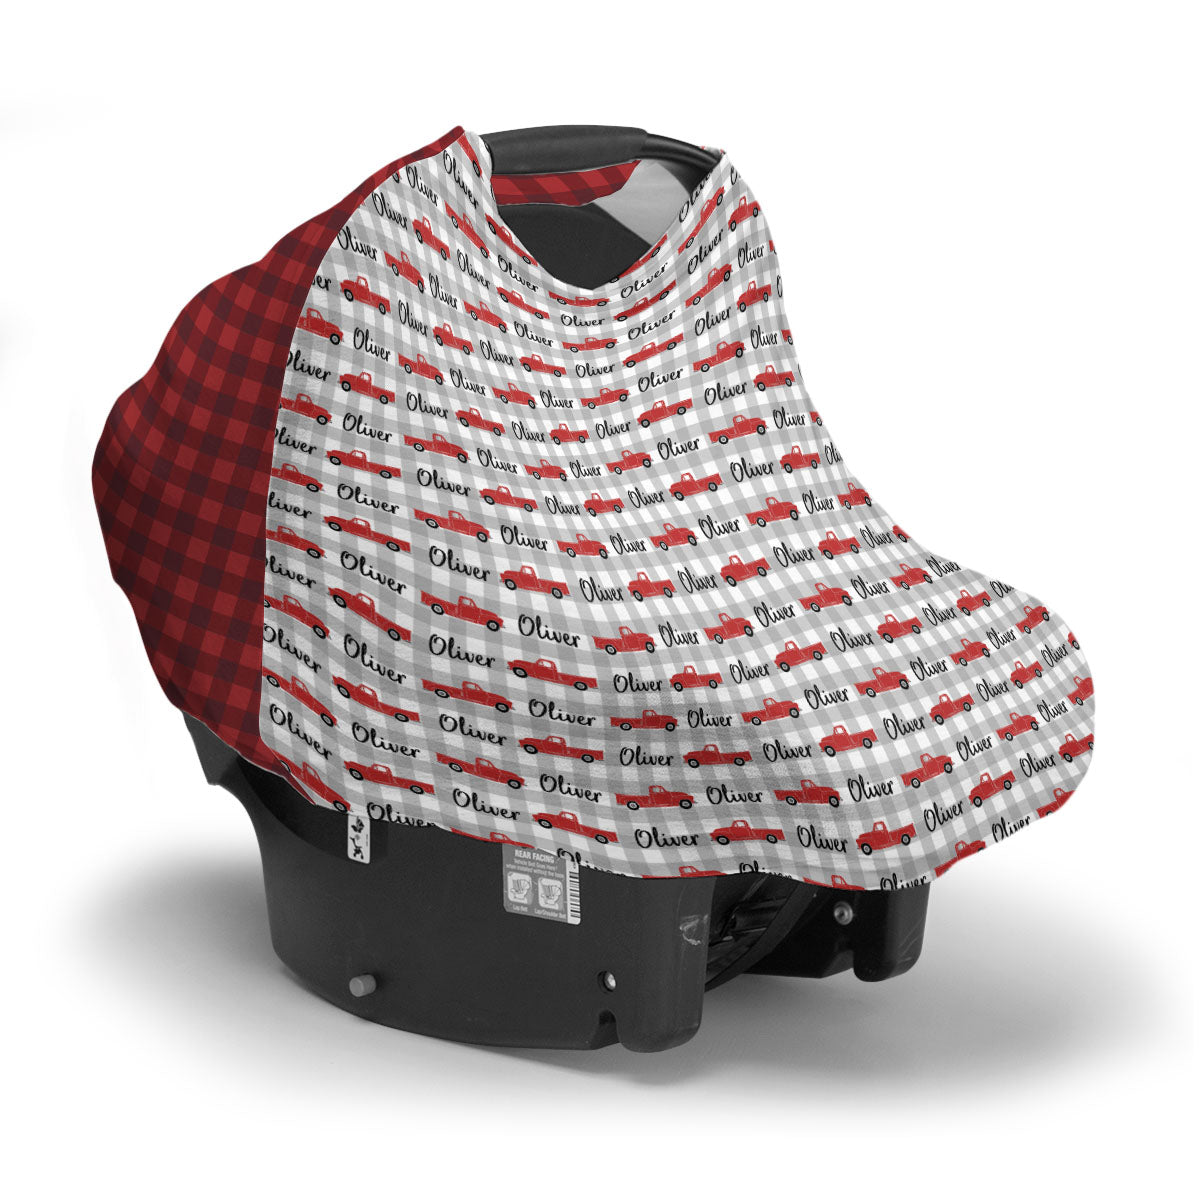 Oliver's Vintage Truck | Car Seat Cover (Multi-Use)